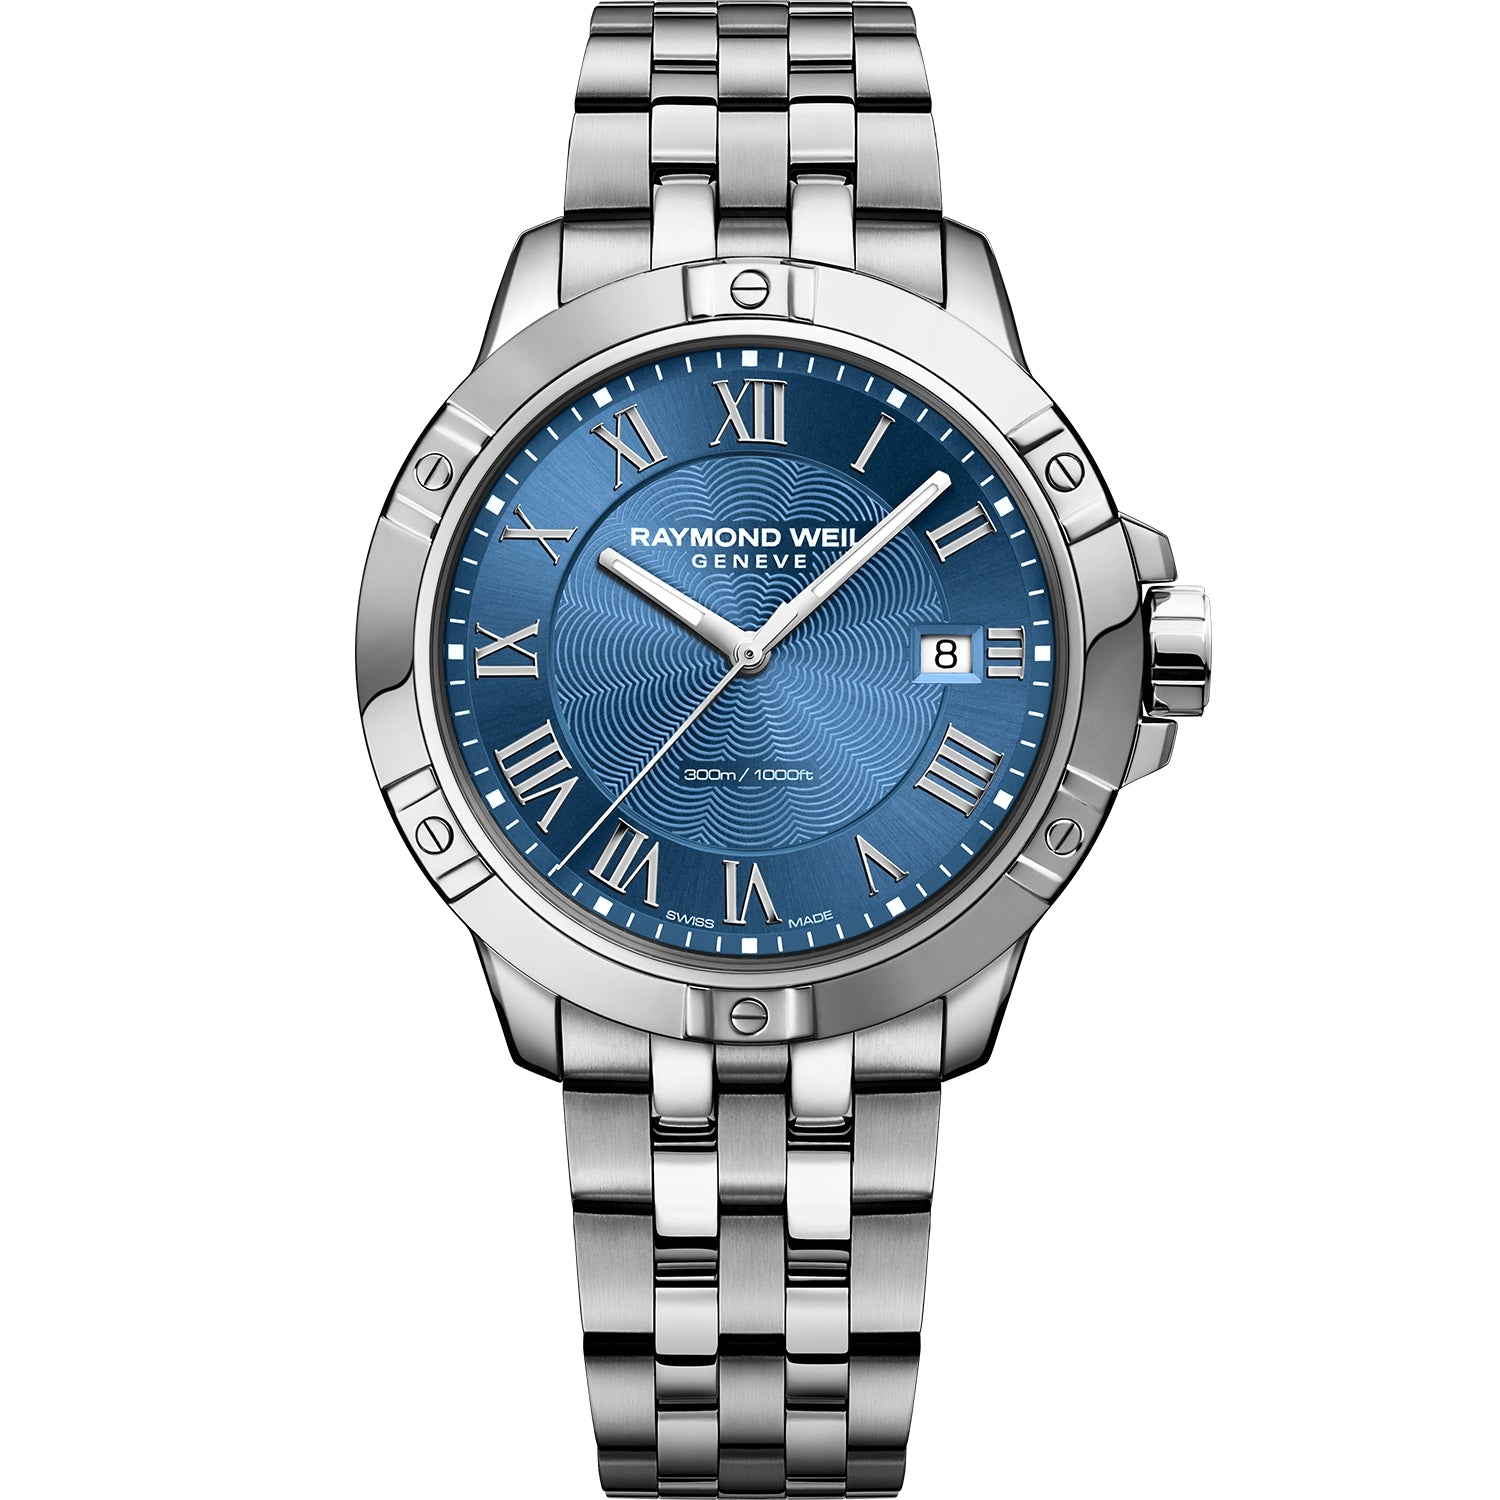 Tango Classic Men's Quartz Steel Blue Bracelet Watch 8160-ST-00508